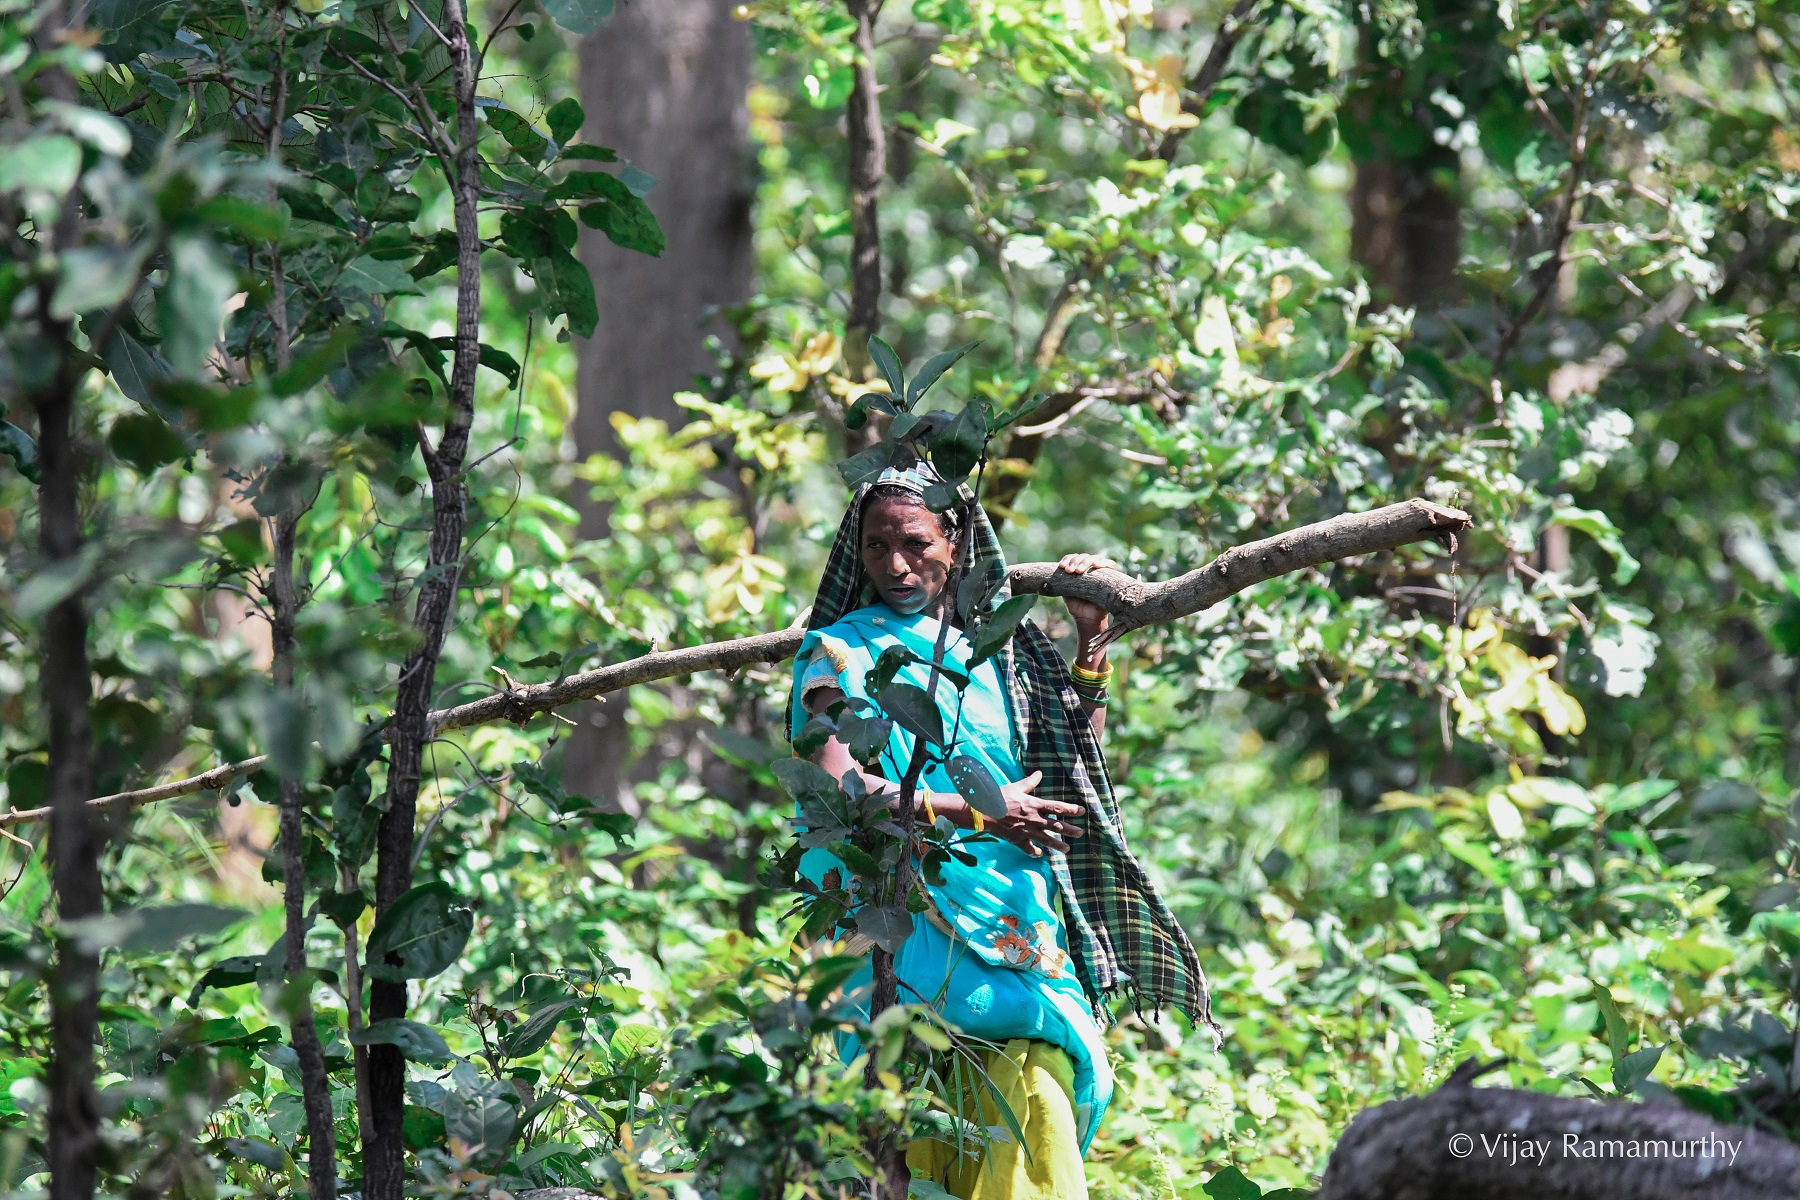 The Adivasi of the Hasdeo have coexisted with the forest since time immemorial. Photo V. Ramamurthy